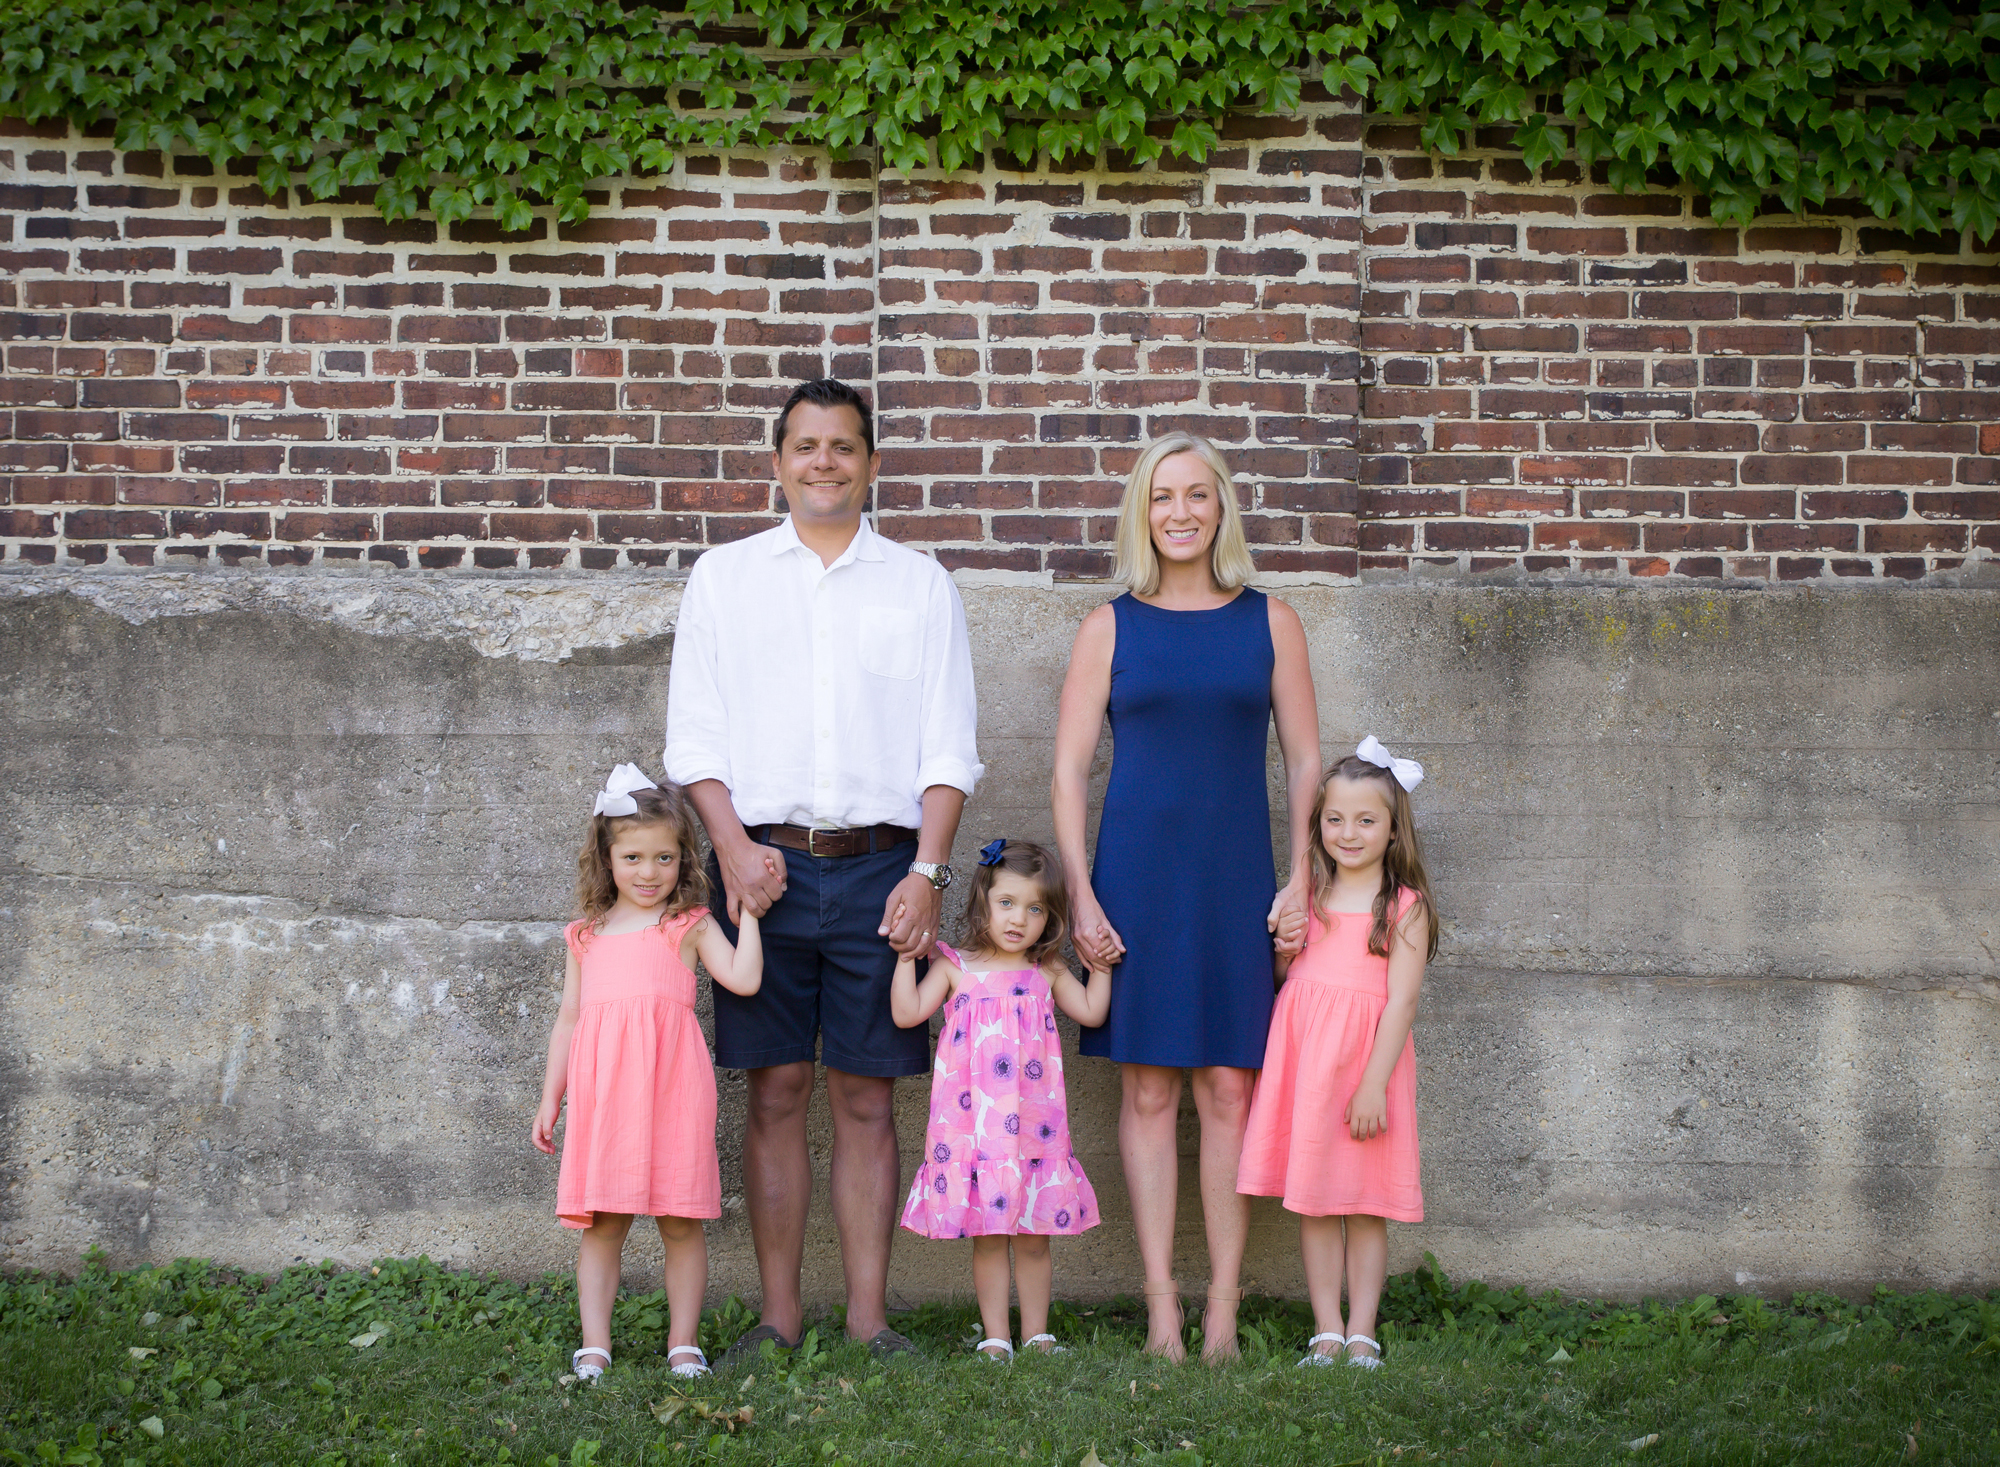 family-of-five-holding-hands-in-front-of-red-brick-wall